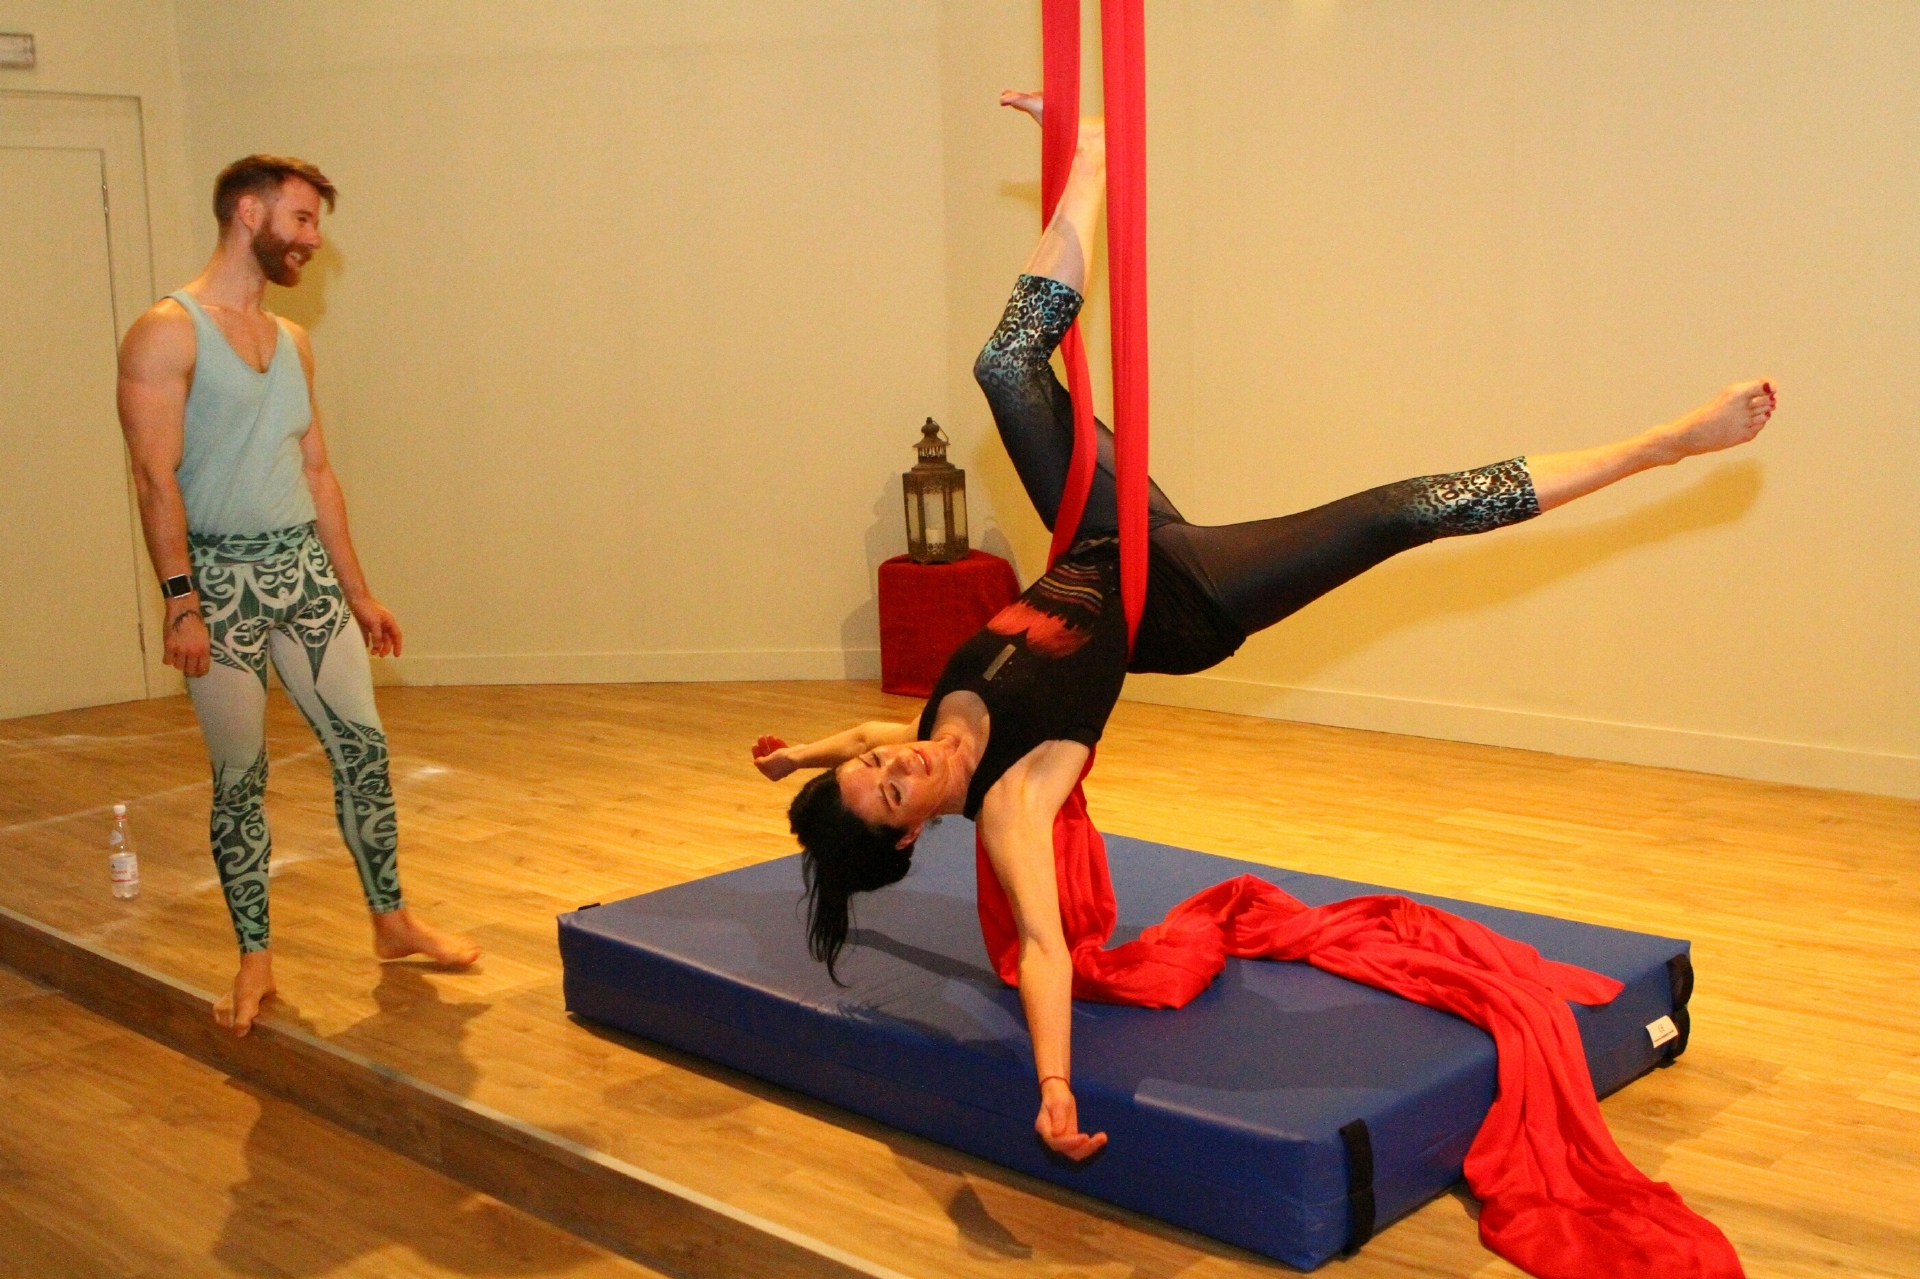 Finlay Wilson helps Gayle to get into aerial silks!